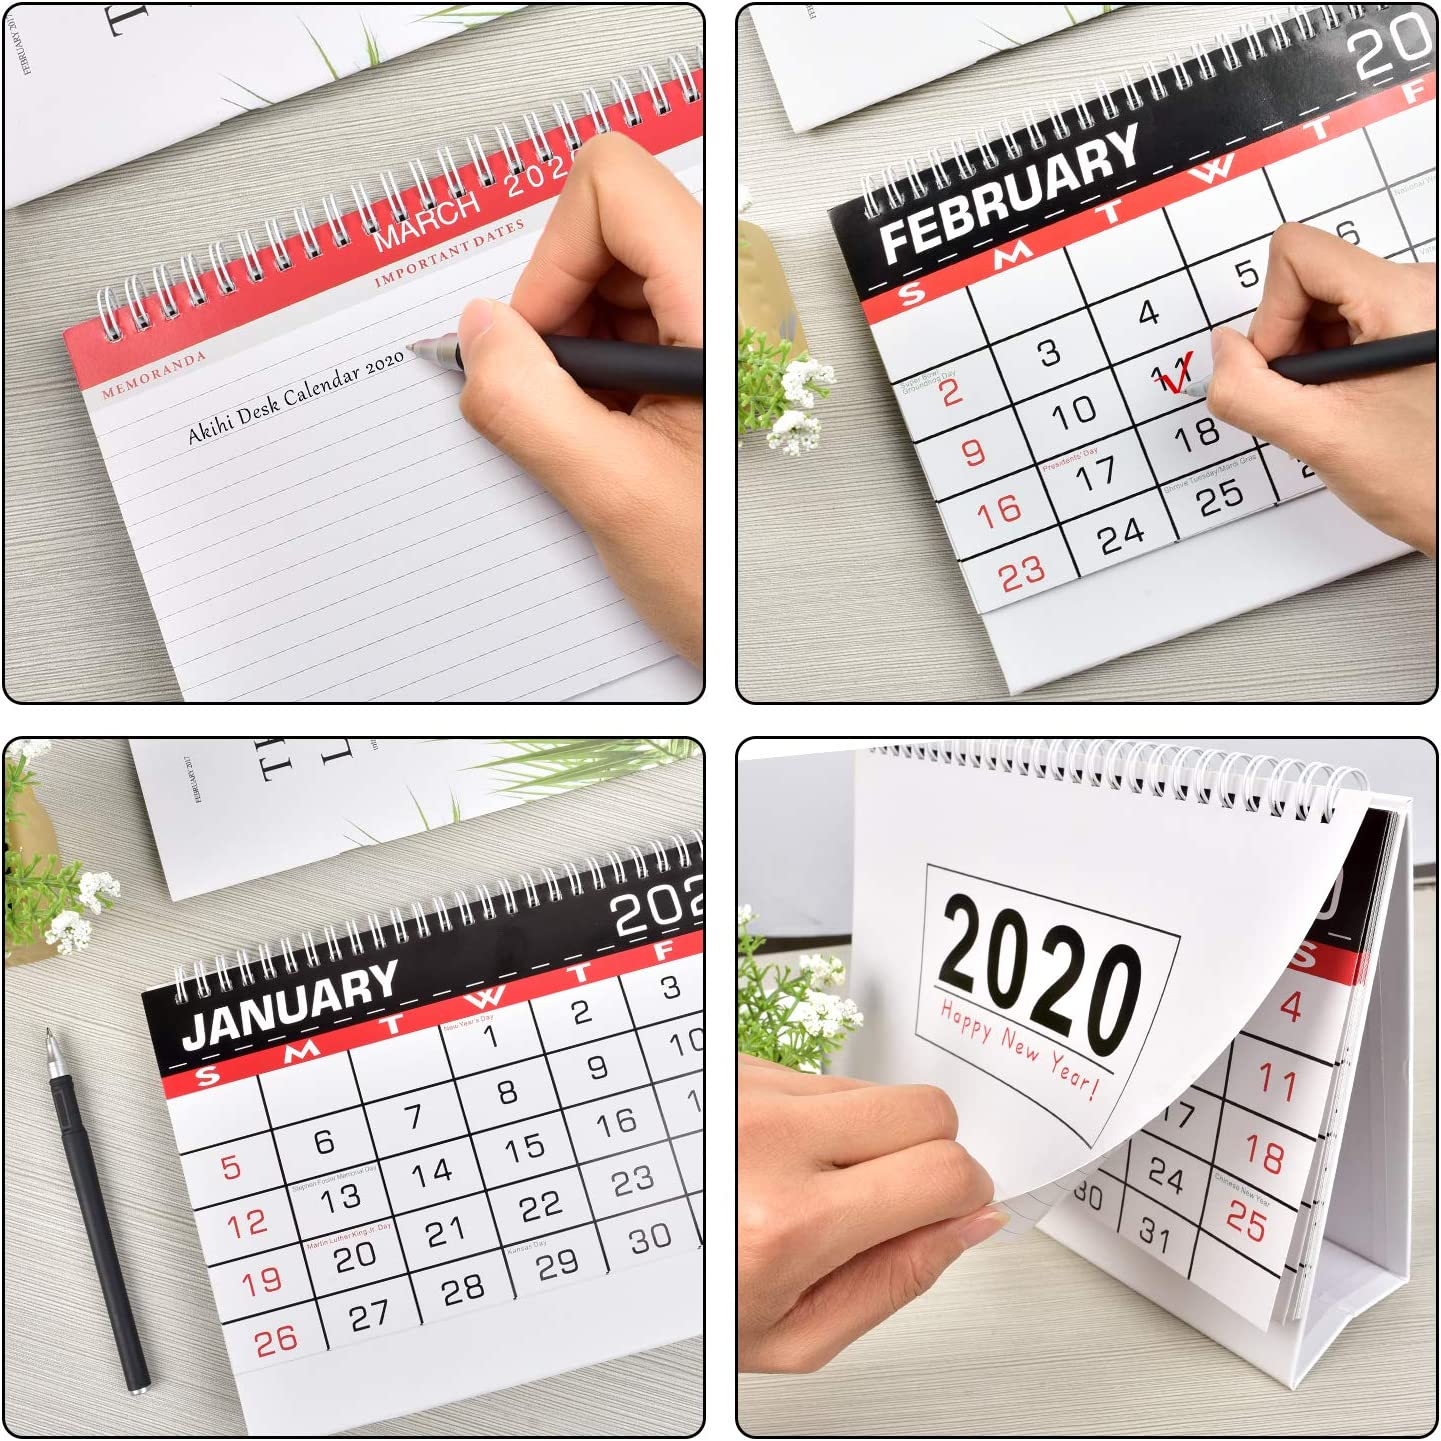 Akihi Standing Desk Calendar 2020 Academic Year,12 Monthly Planner with Tabs Double Sided Designs,9.5 /× 6.5 inches,Thick Paper